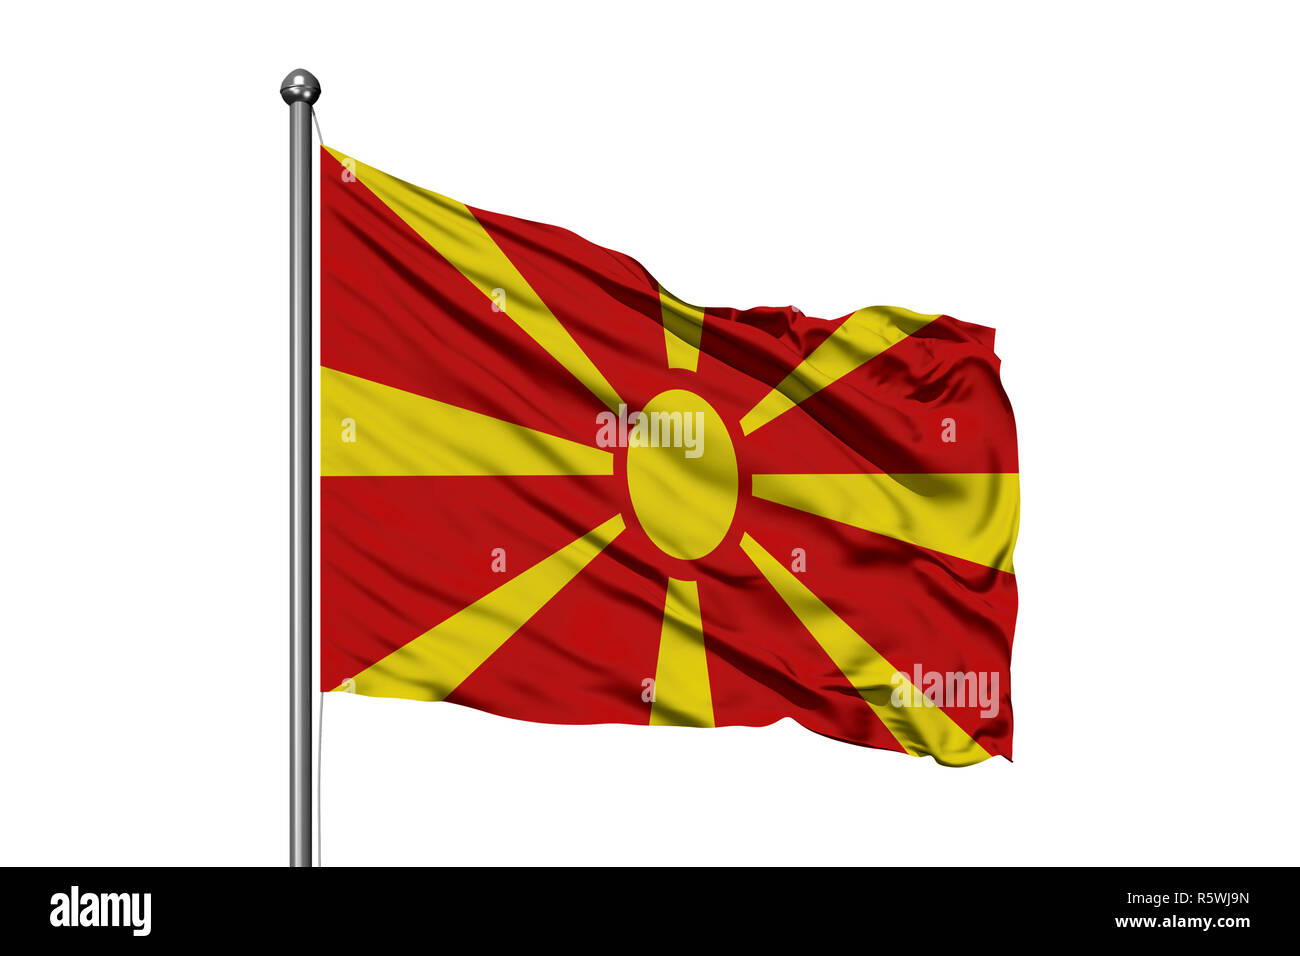 Flag of Macedonia waving in the wind, isolated white background. Macedonian flag. - Stock Image